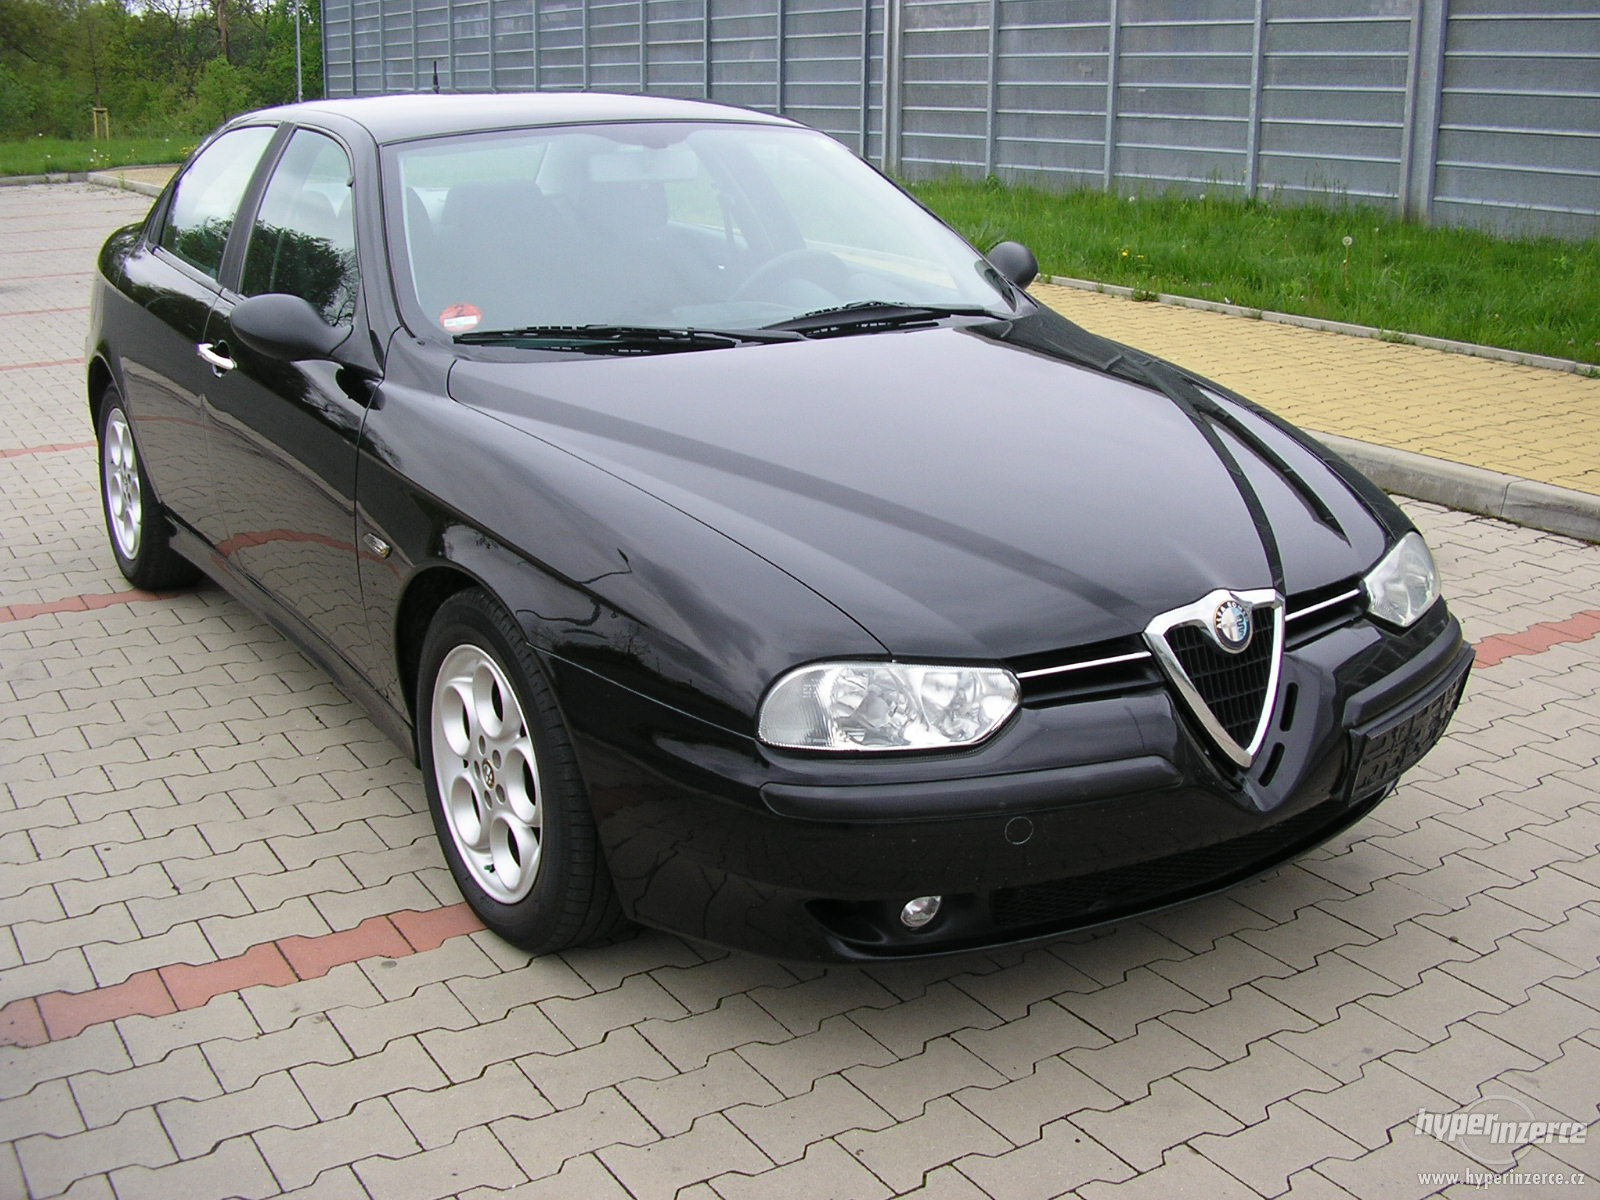 Alfa Romeo 156 932 1 9 Jtd 105 Hp Photo Gallery